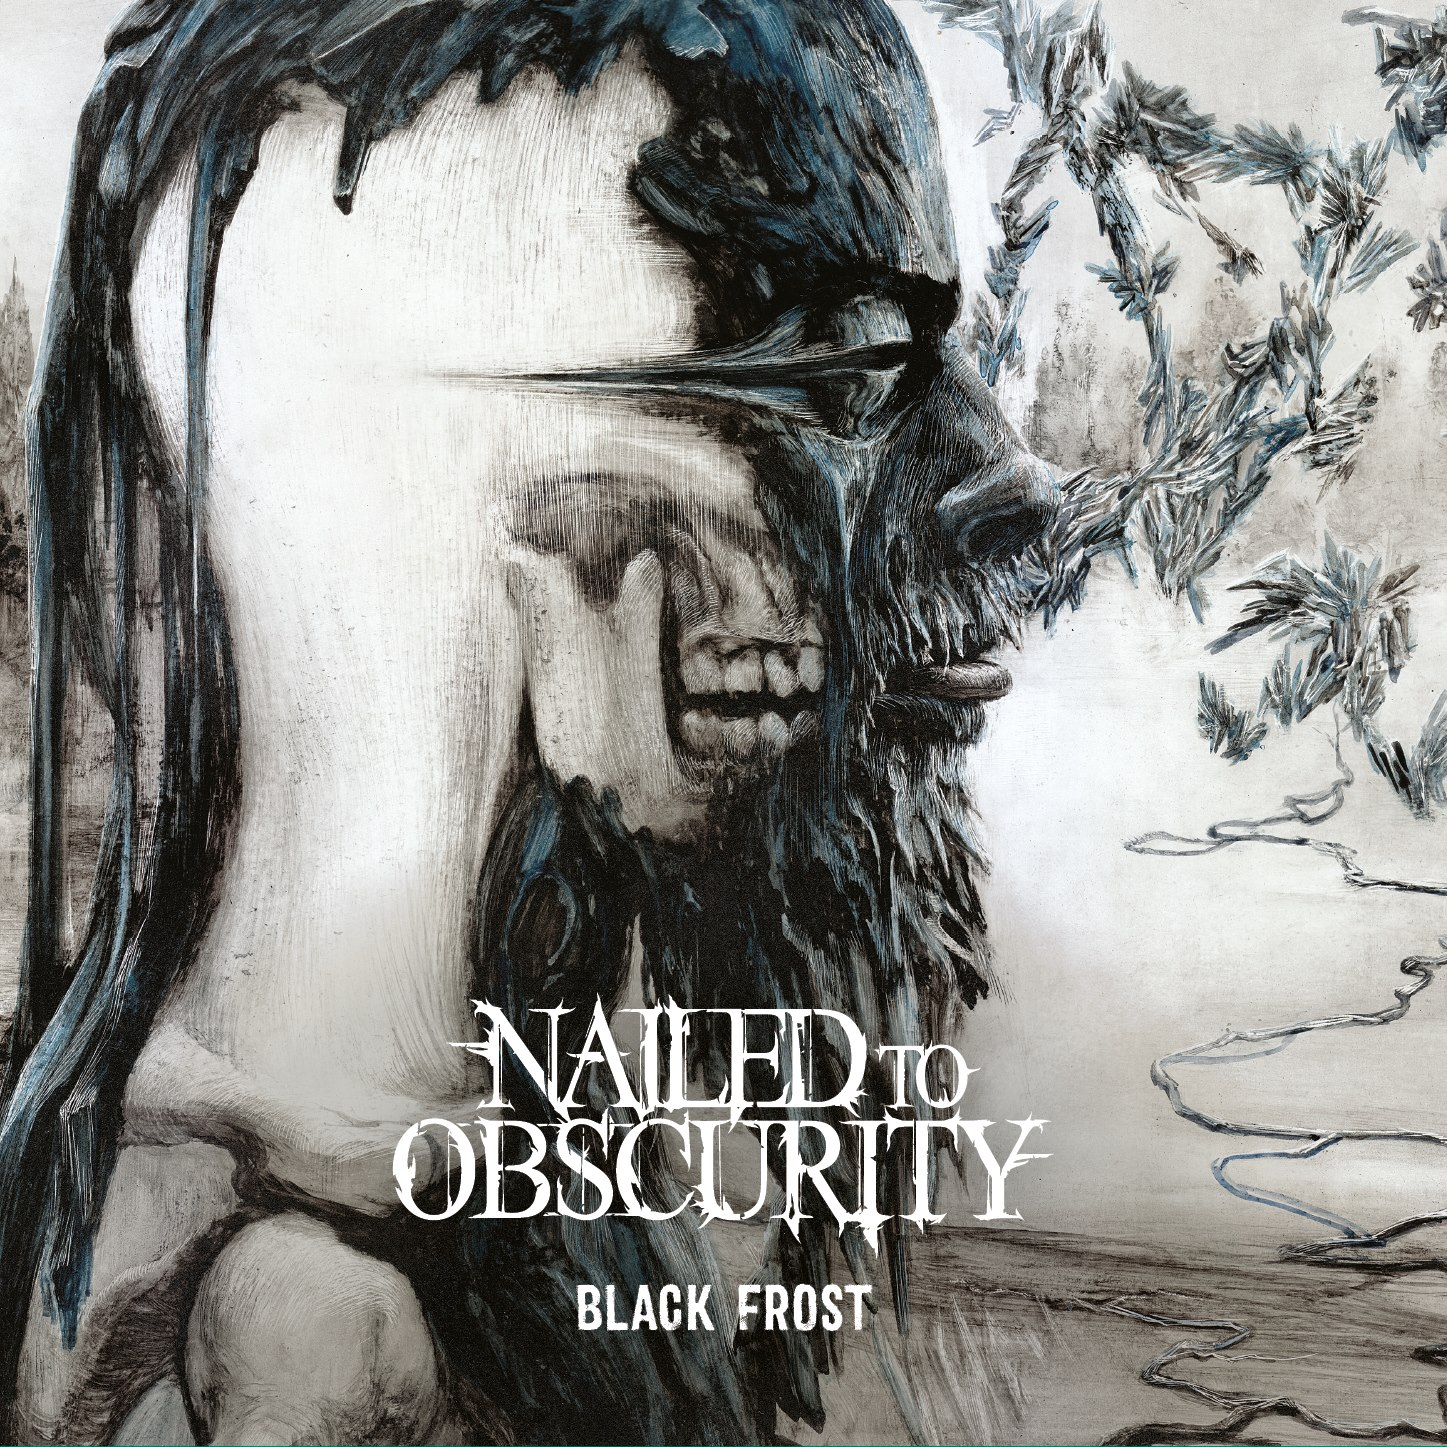 Nailed To Obscurity, Black Frost